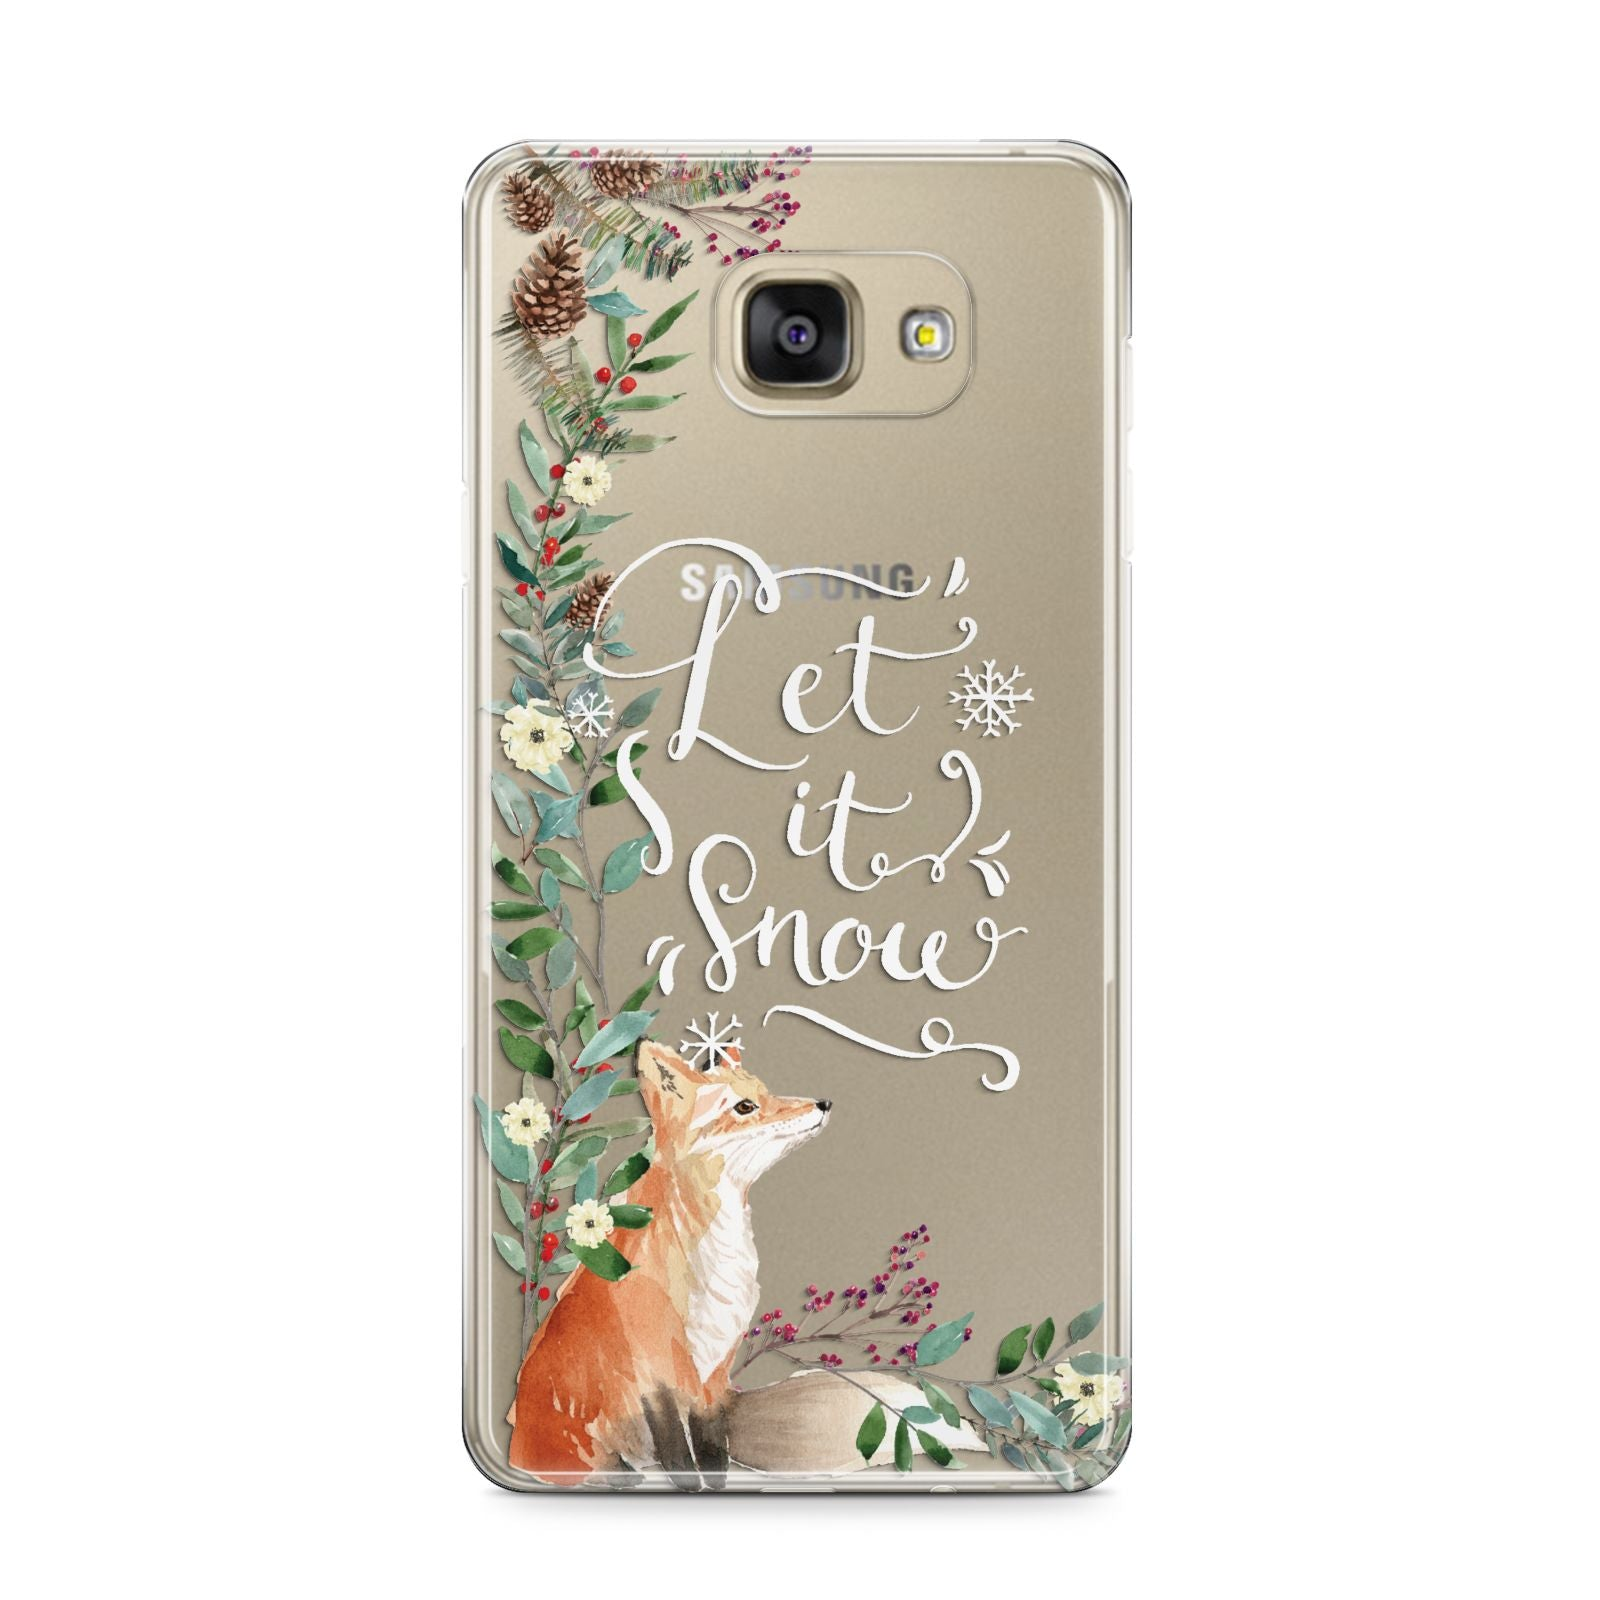 Let It Snow Christmas Samsung Galaxy A9 2016 Case on gold phone